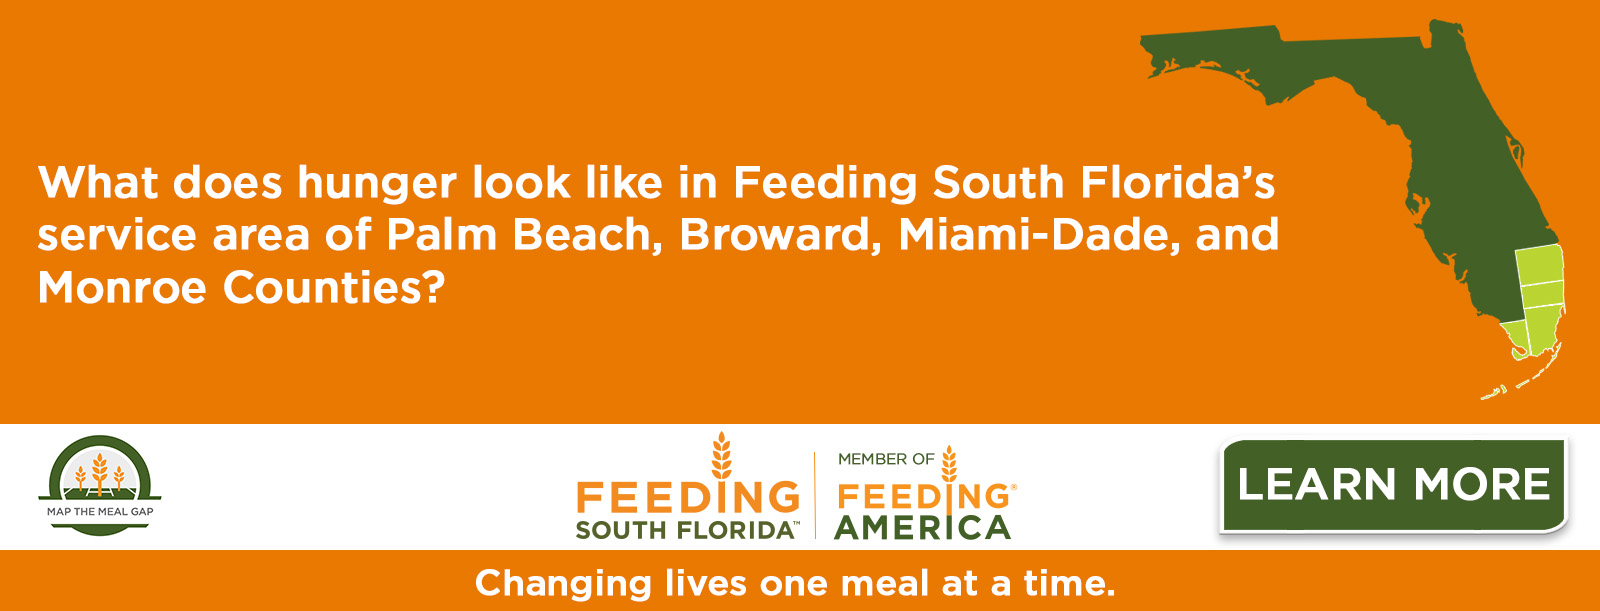 Food Insecurity In South Florida Updated Map The Meal Gap Analysis